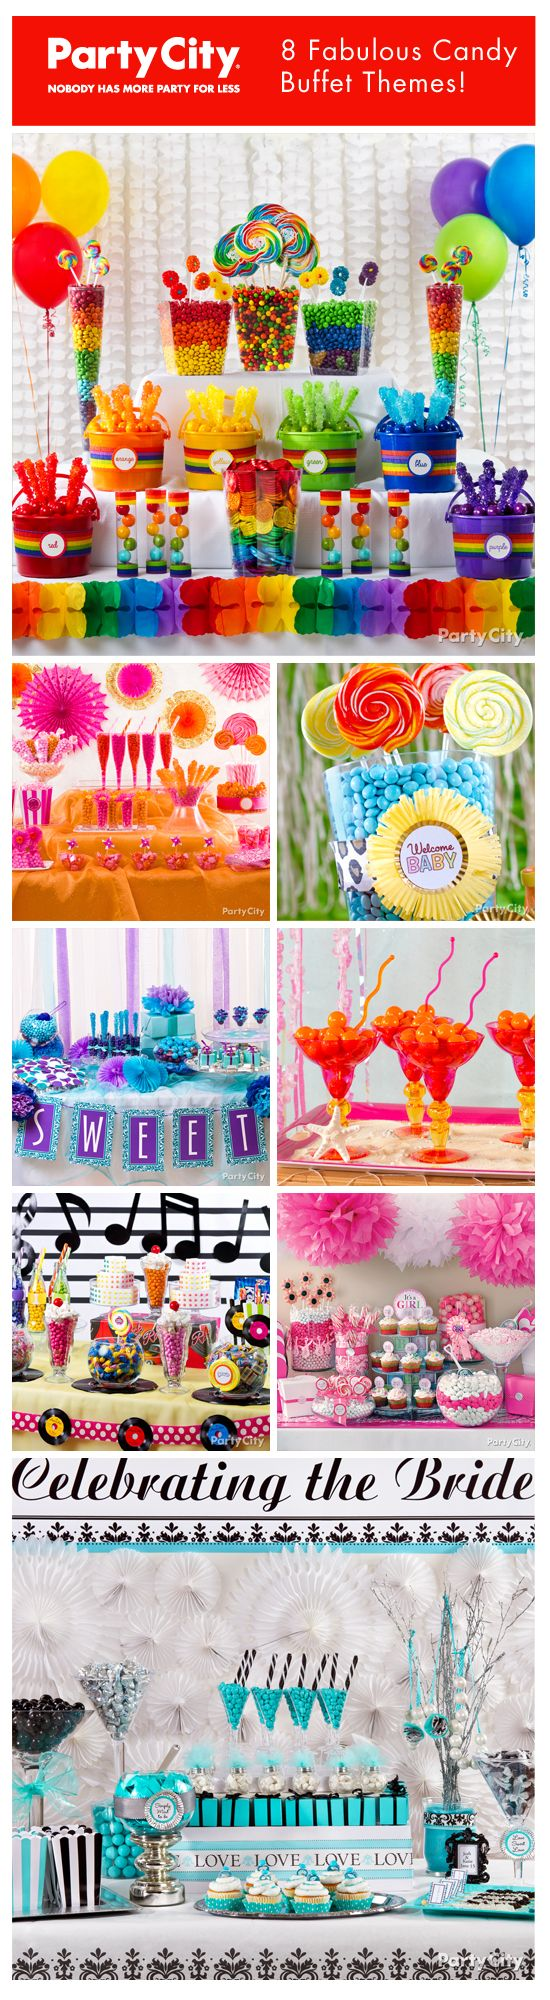 25 best ideas about rainbow theme on pinterest rainbow party themes - Candy Buffet Ideas For Bridal Shower Or Wedding Baby Shower Birthday Party Theme Party Rainbow Party Sweet